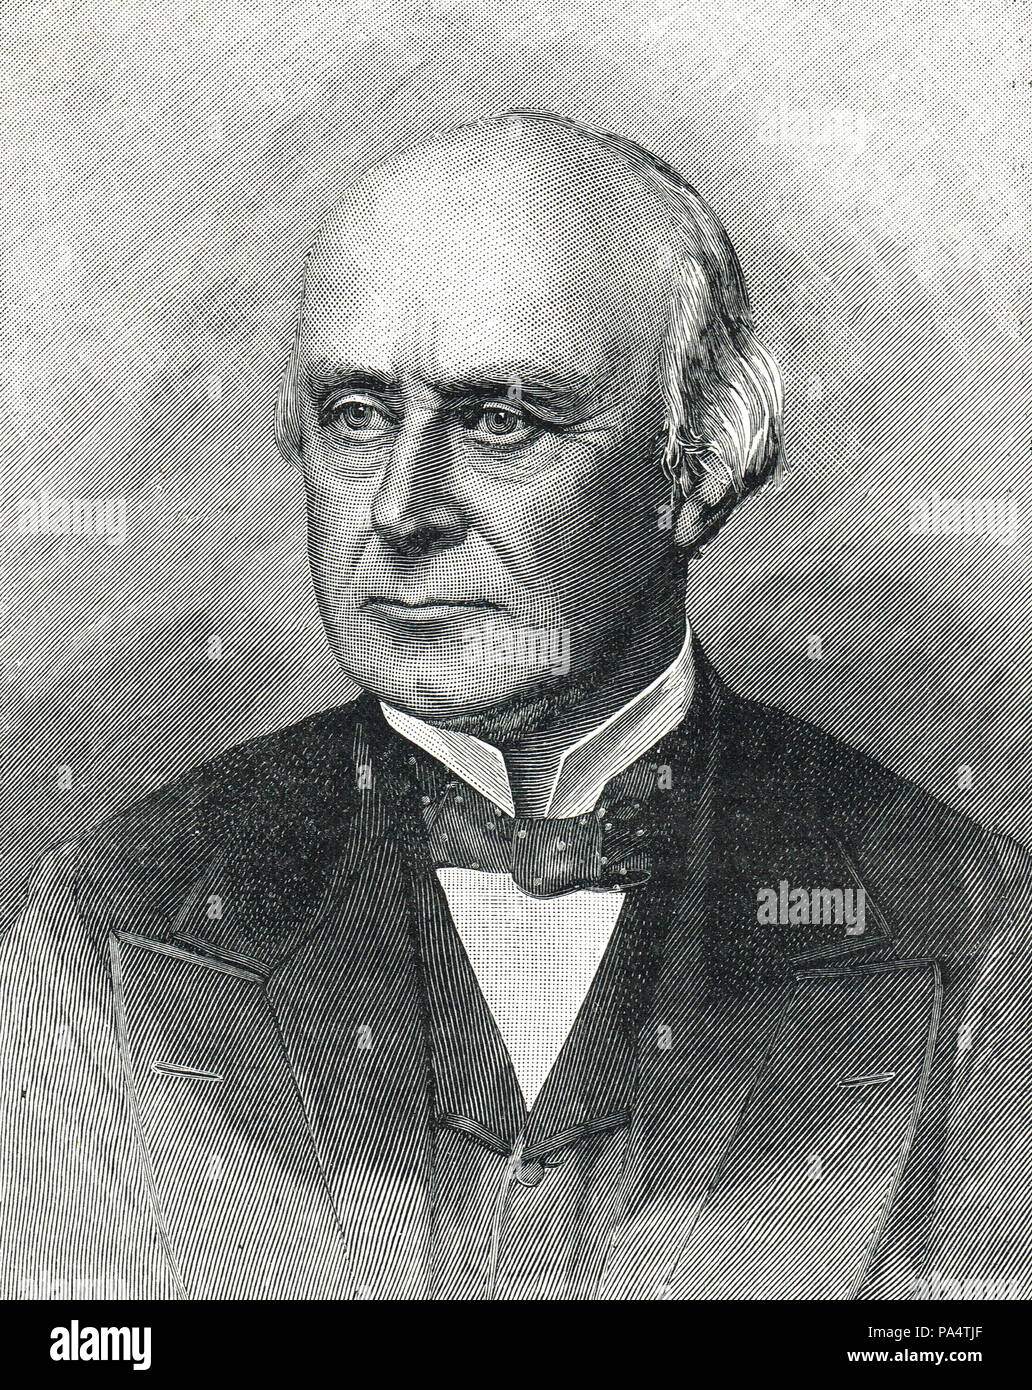 Henry Brand, 1st Viscount Hampden, British Liberal politician, and speaker of the House of Commons 1872 to 1884 - Stock Image